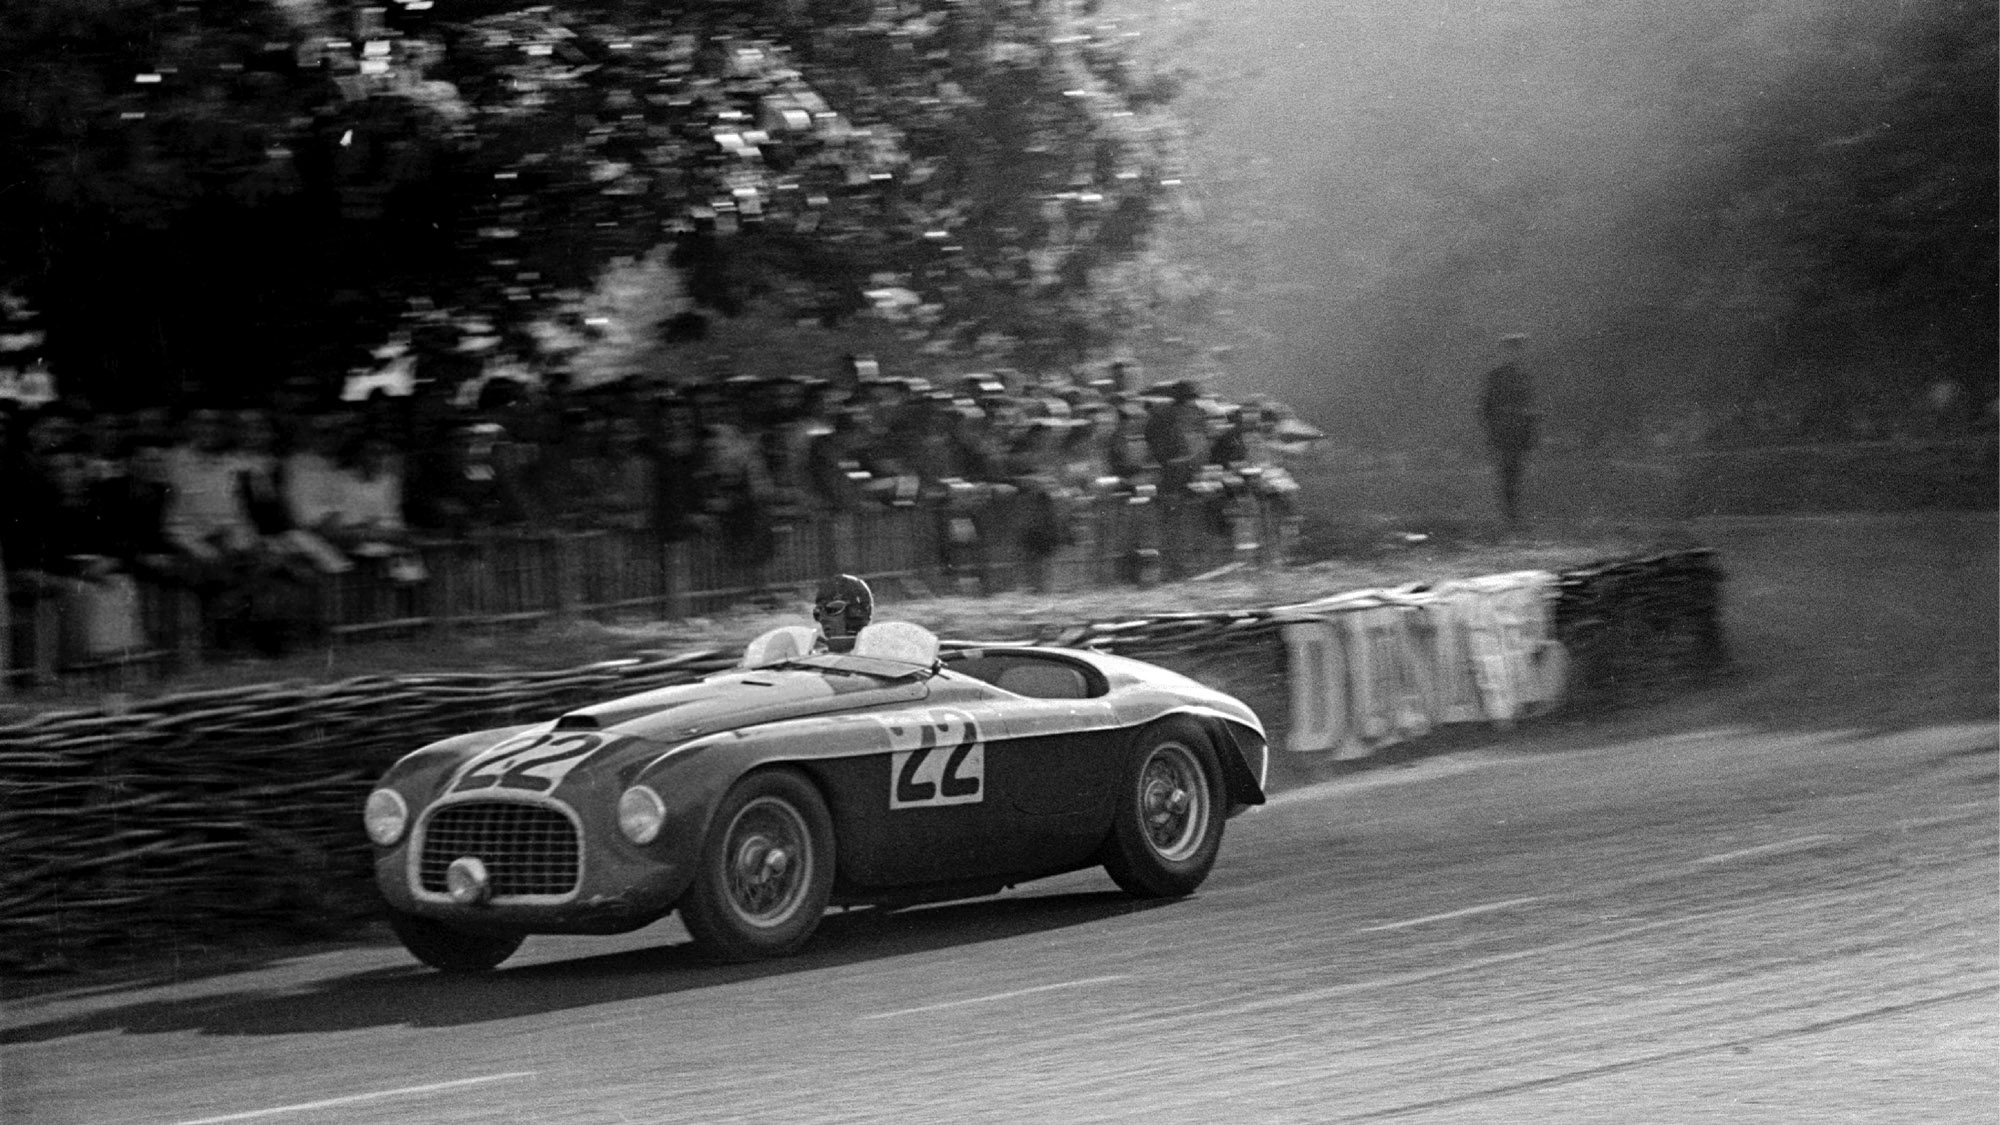 Luigi Chinetti in his Ferrari 166MM at the 1949 Le Mans 24 Hours